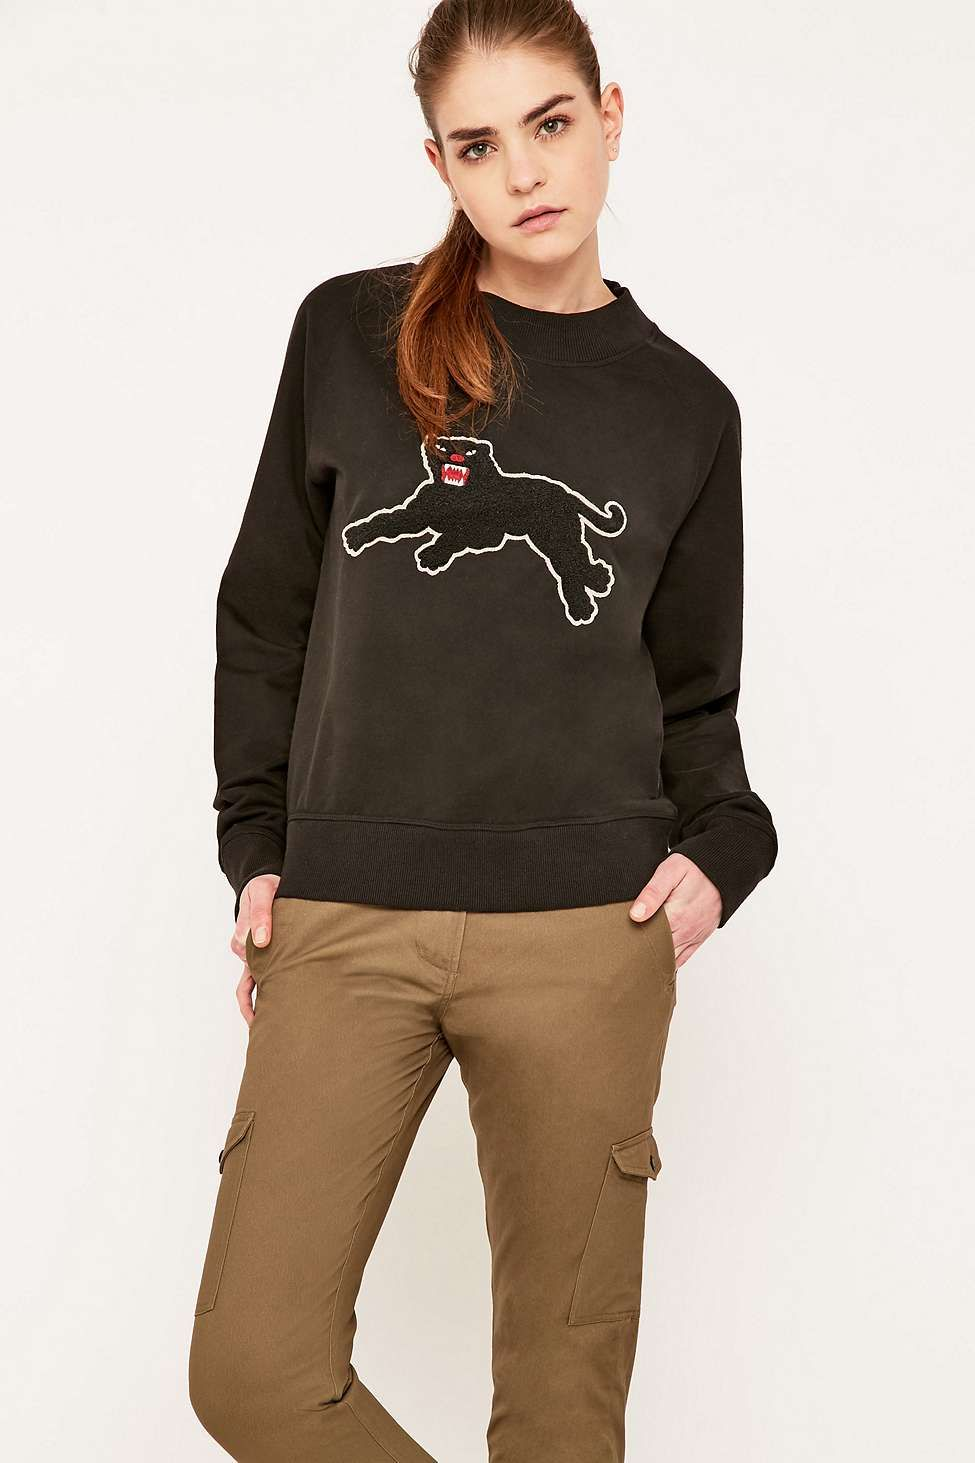 09dba201f Shop Maharishi Panther Black Crew Neck Sweatshirt at Urban Outfitters  today. Find this Pin and more on Sweaters   knitwear ...